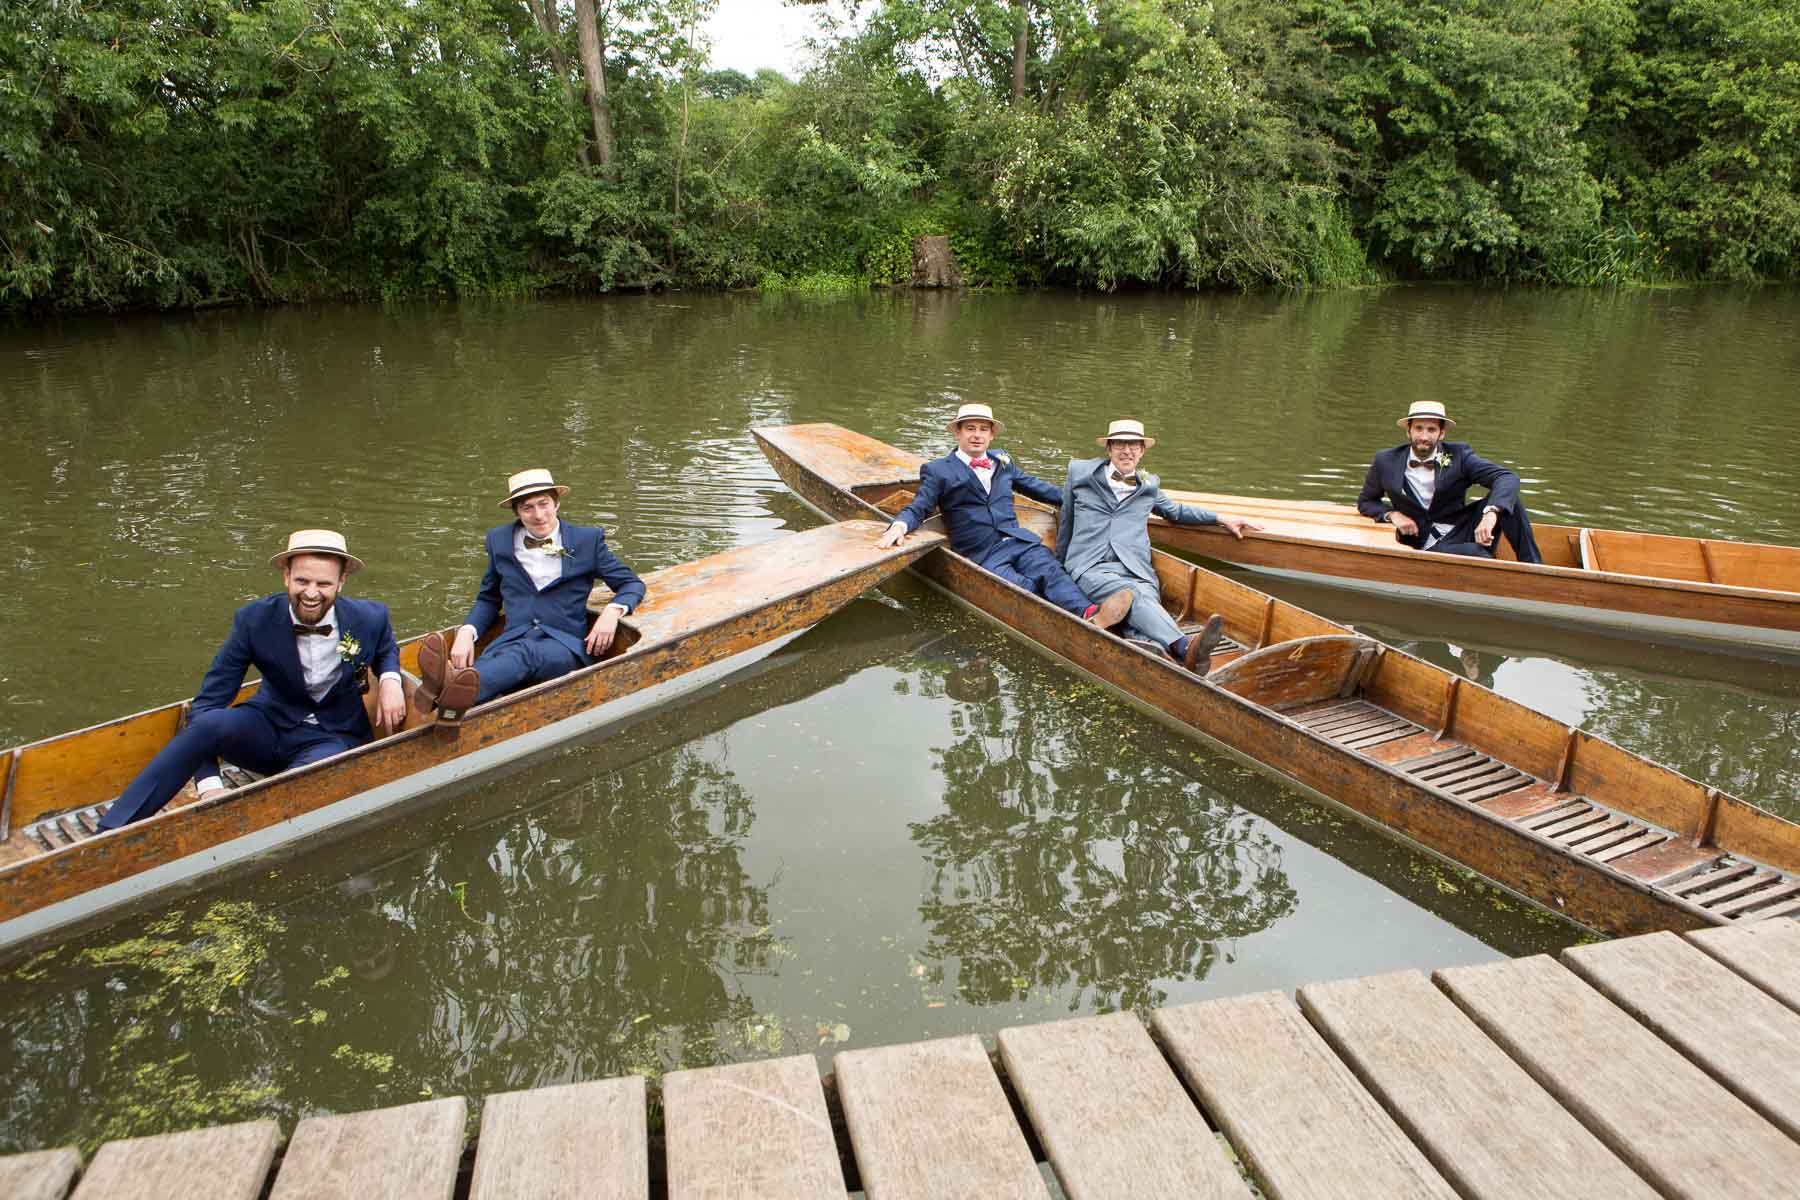 The groomsmen recline in punts on the river wearing straw boaters